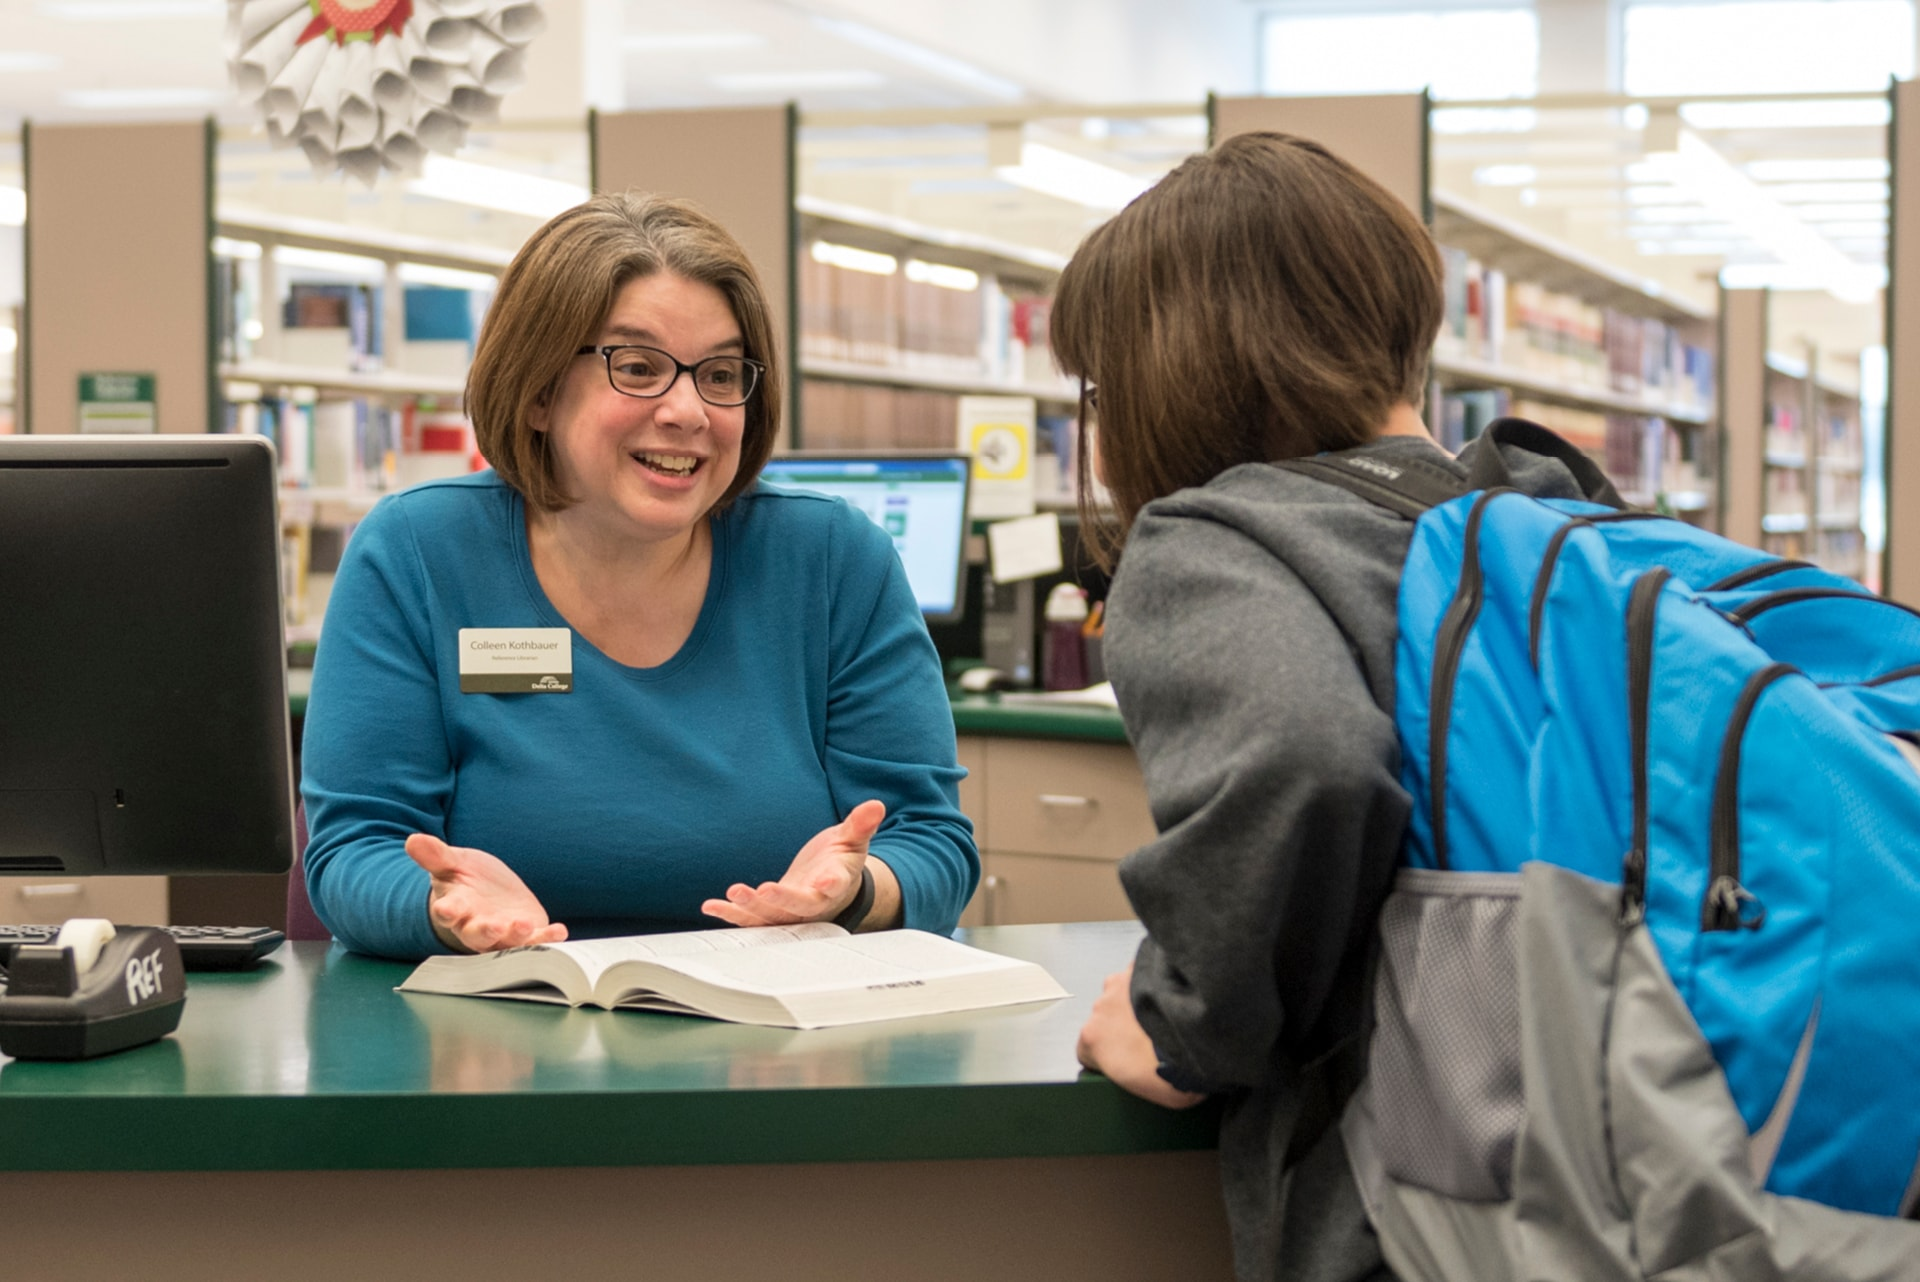 A student asks a smiling librarian for help at the reference desk